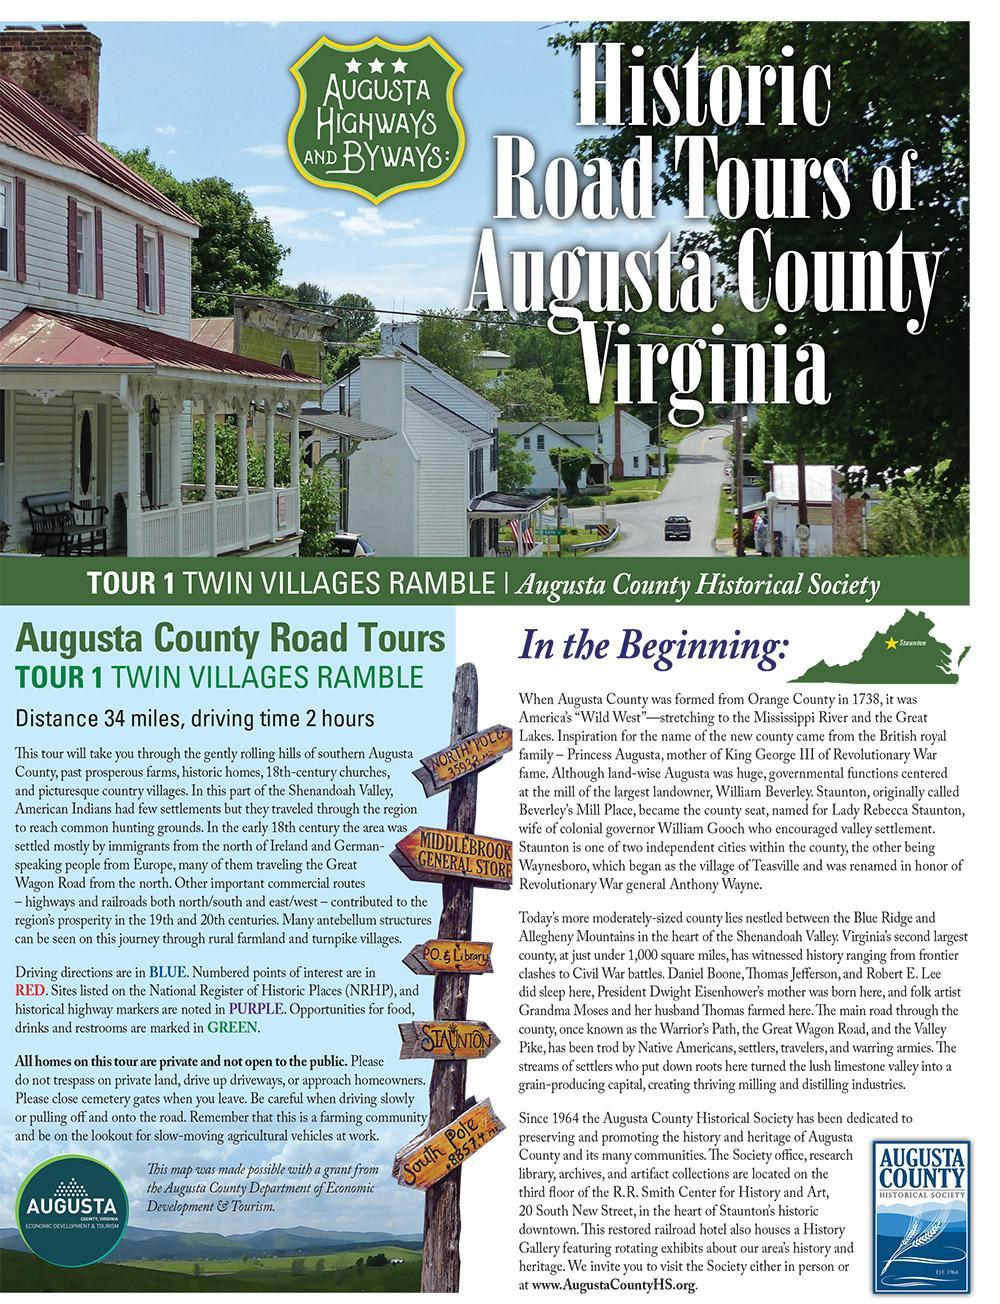 Take the Augusta County Historical Society Driving Tour